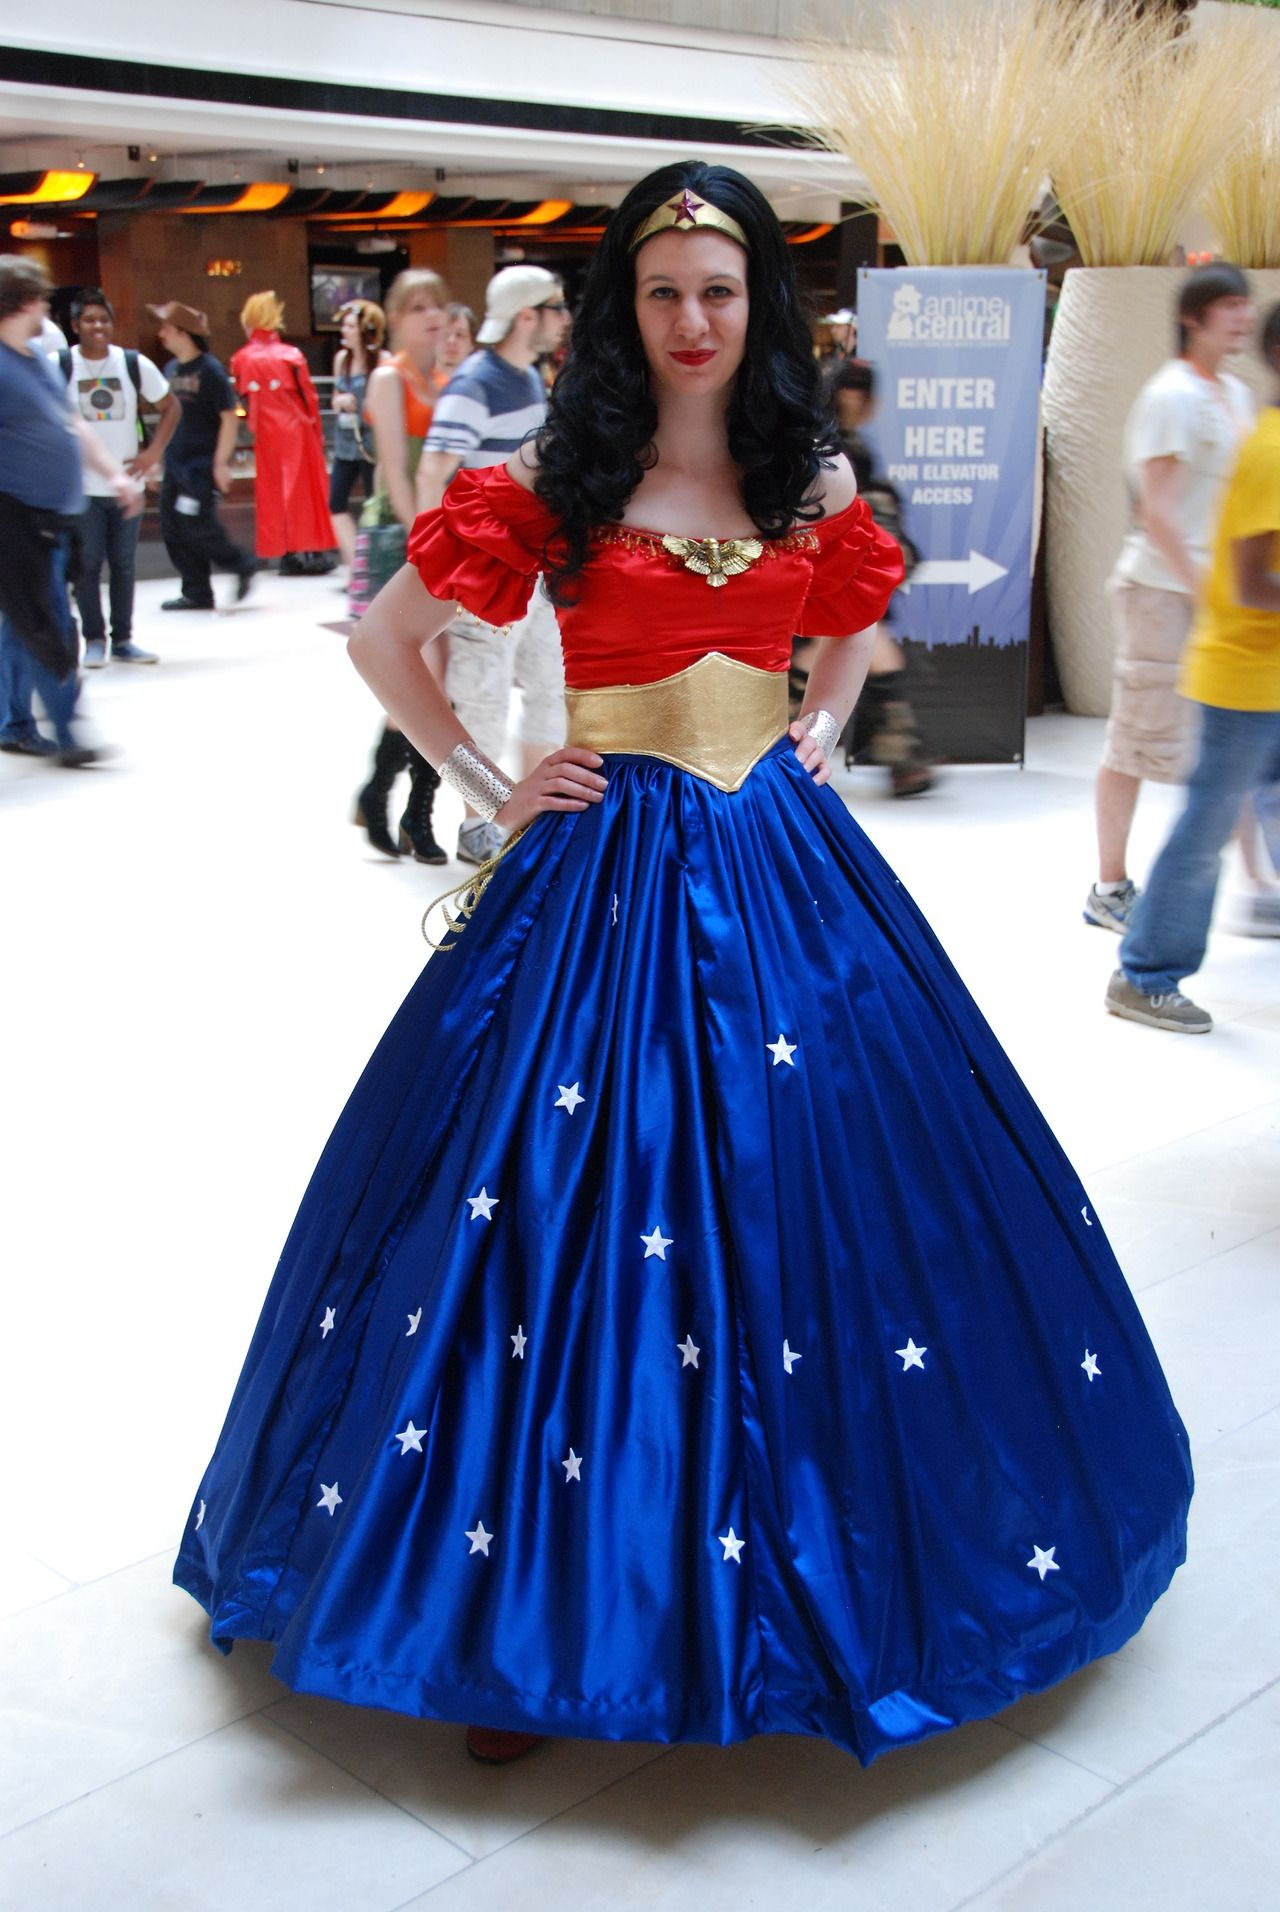 Wonder Woman Ball Gown Cosplaythis might be the first